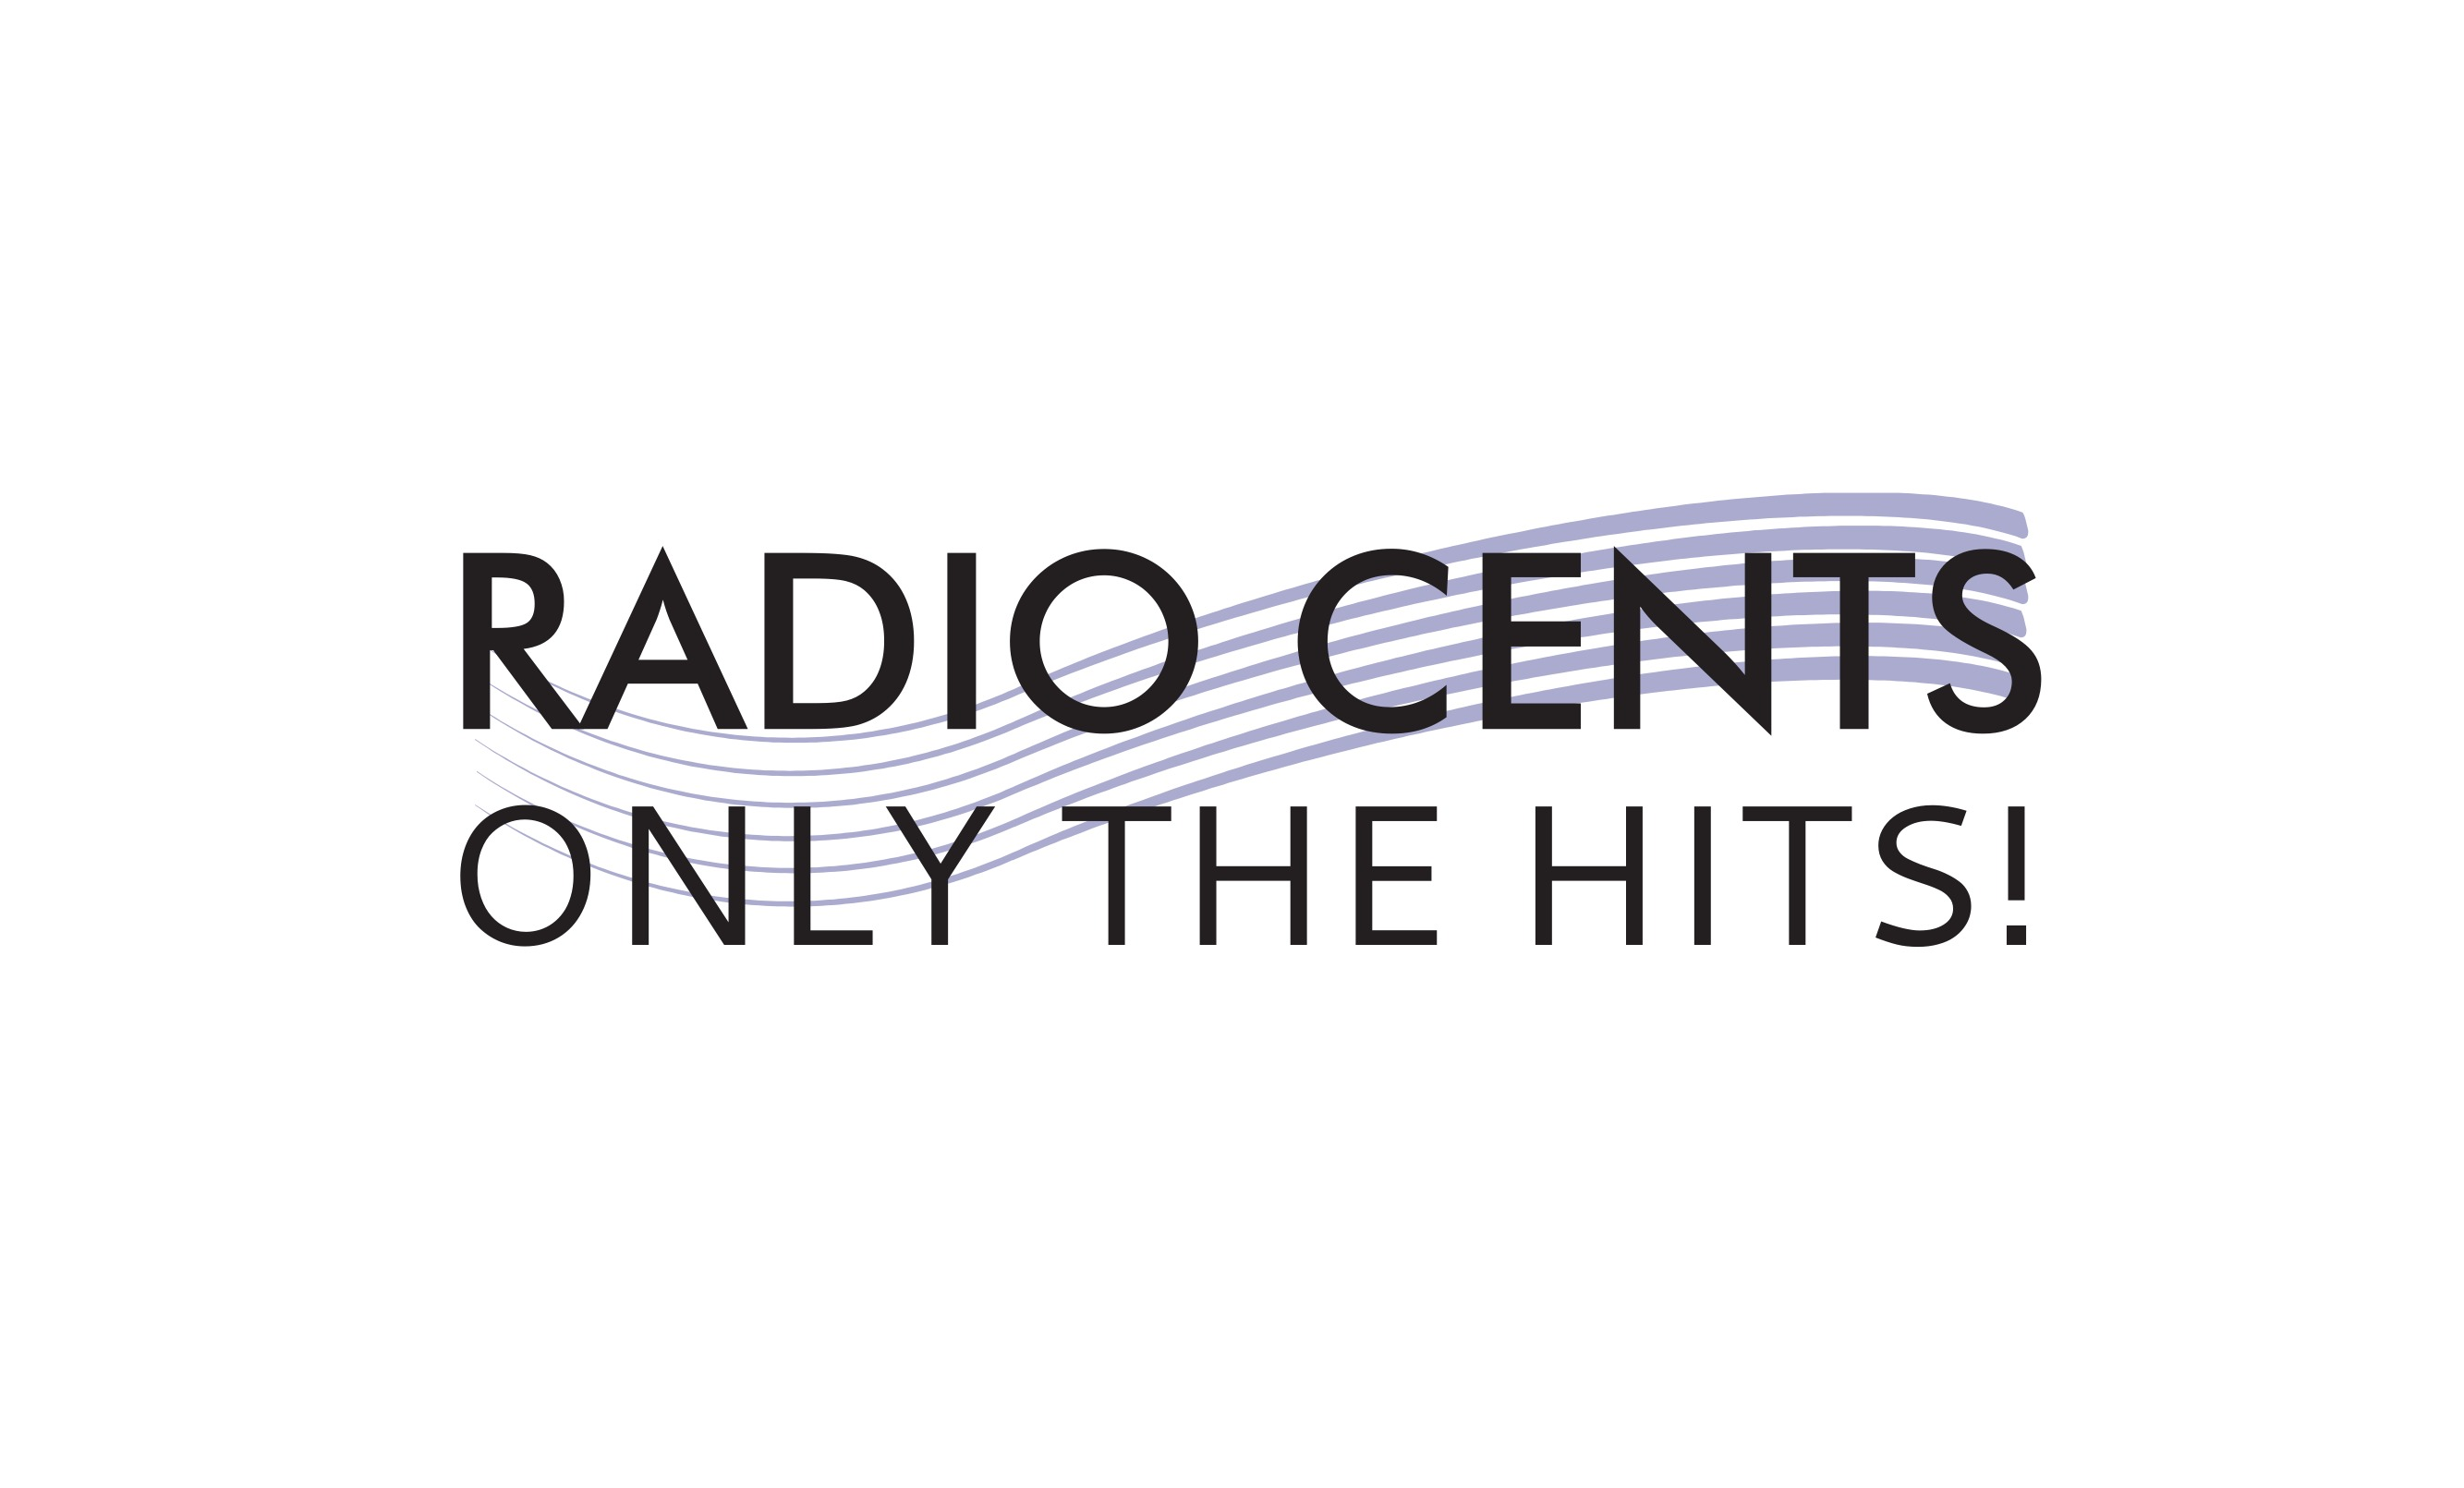 RADIO CENTS ONLY THE HITS!